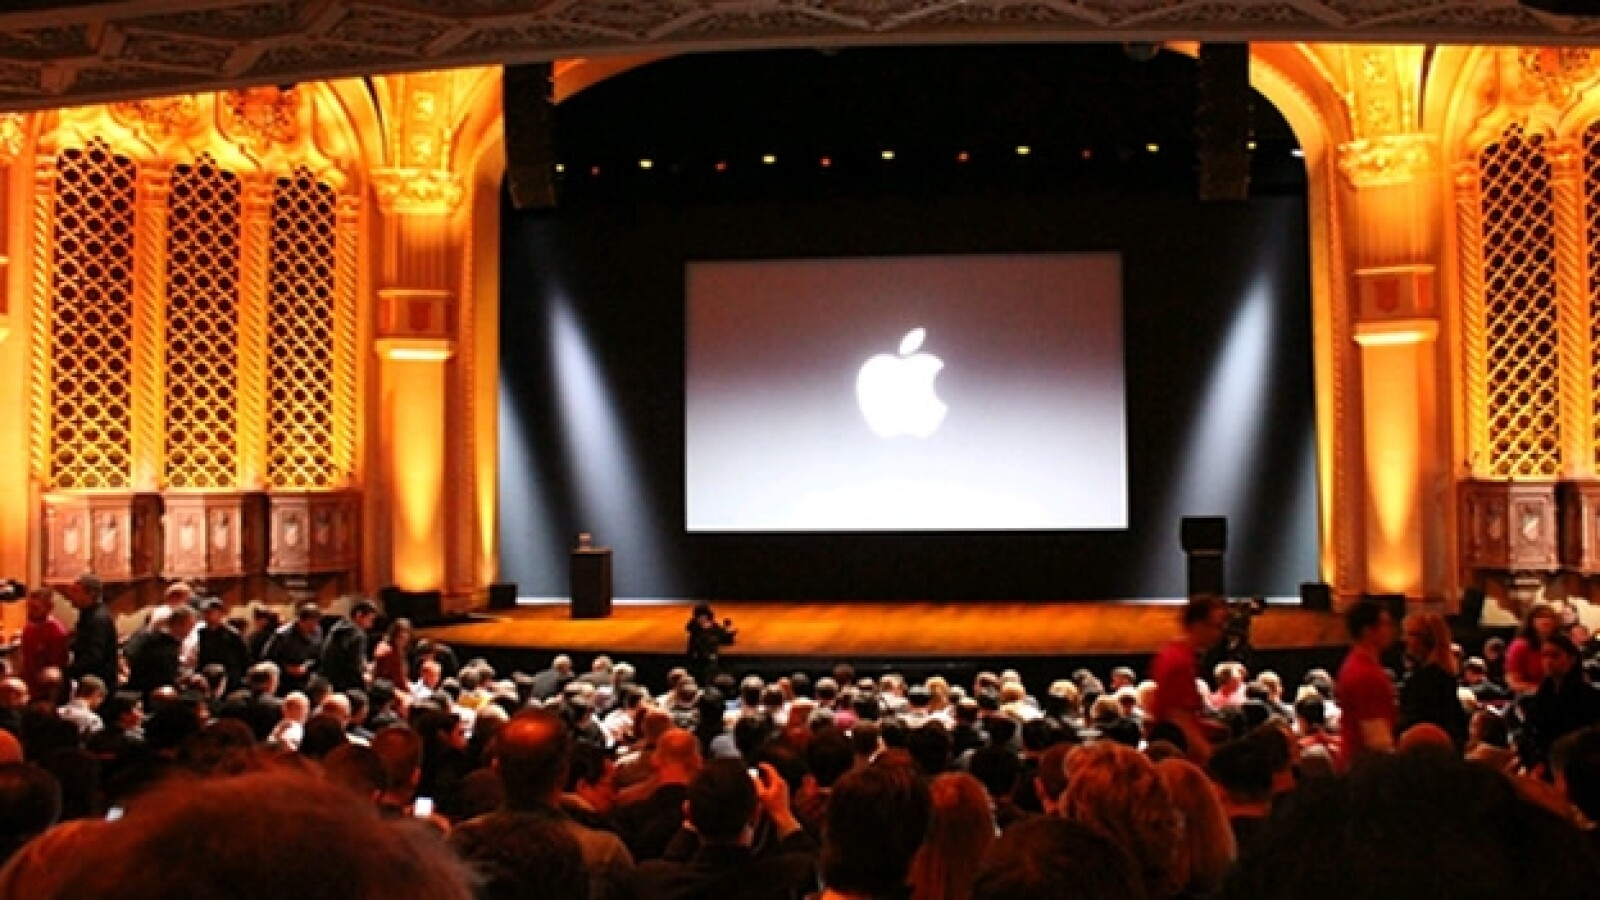 teatro San Jose California evento Apple 23 de octubre